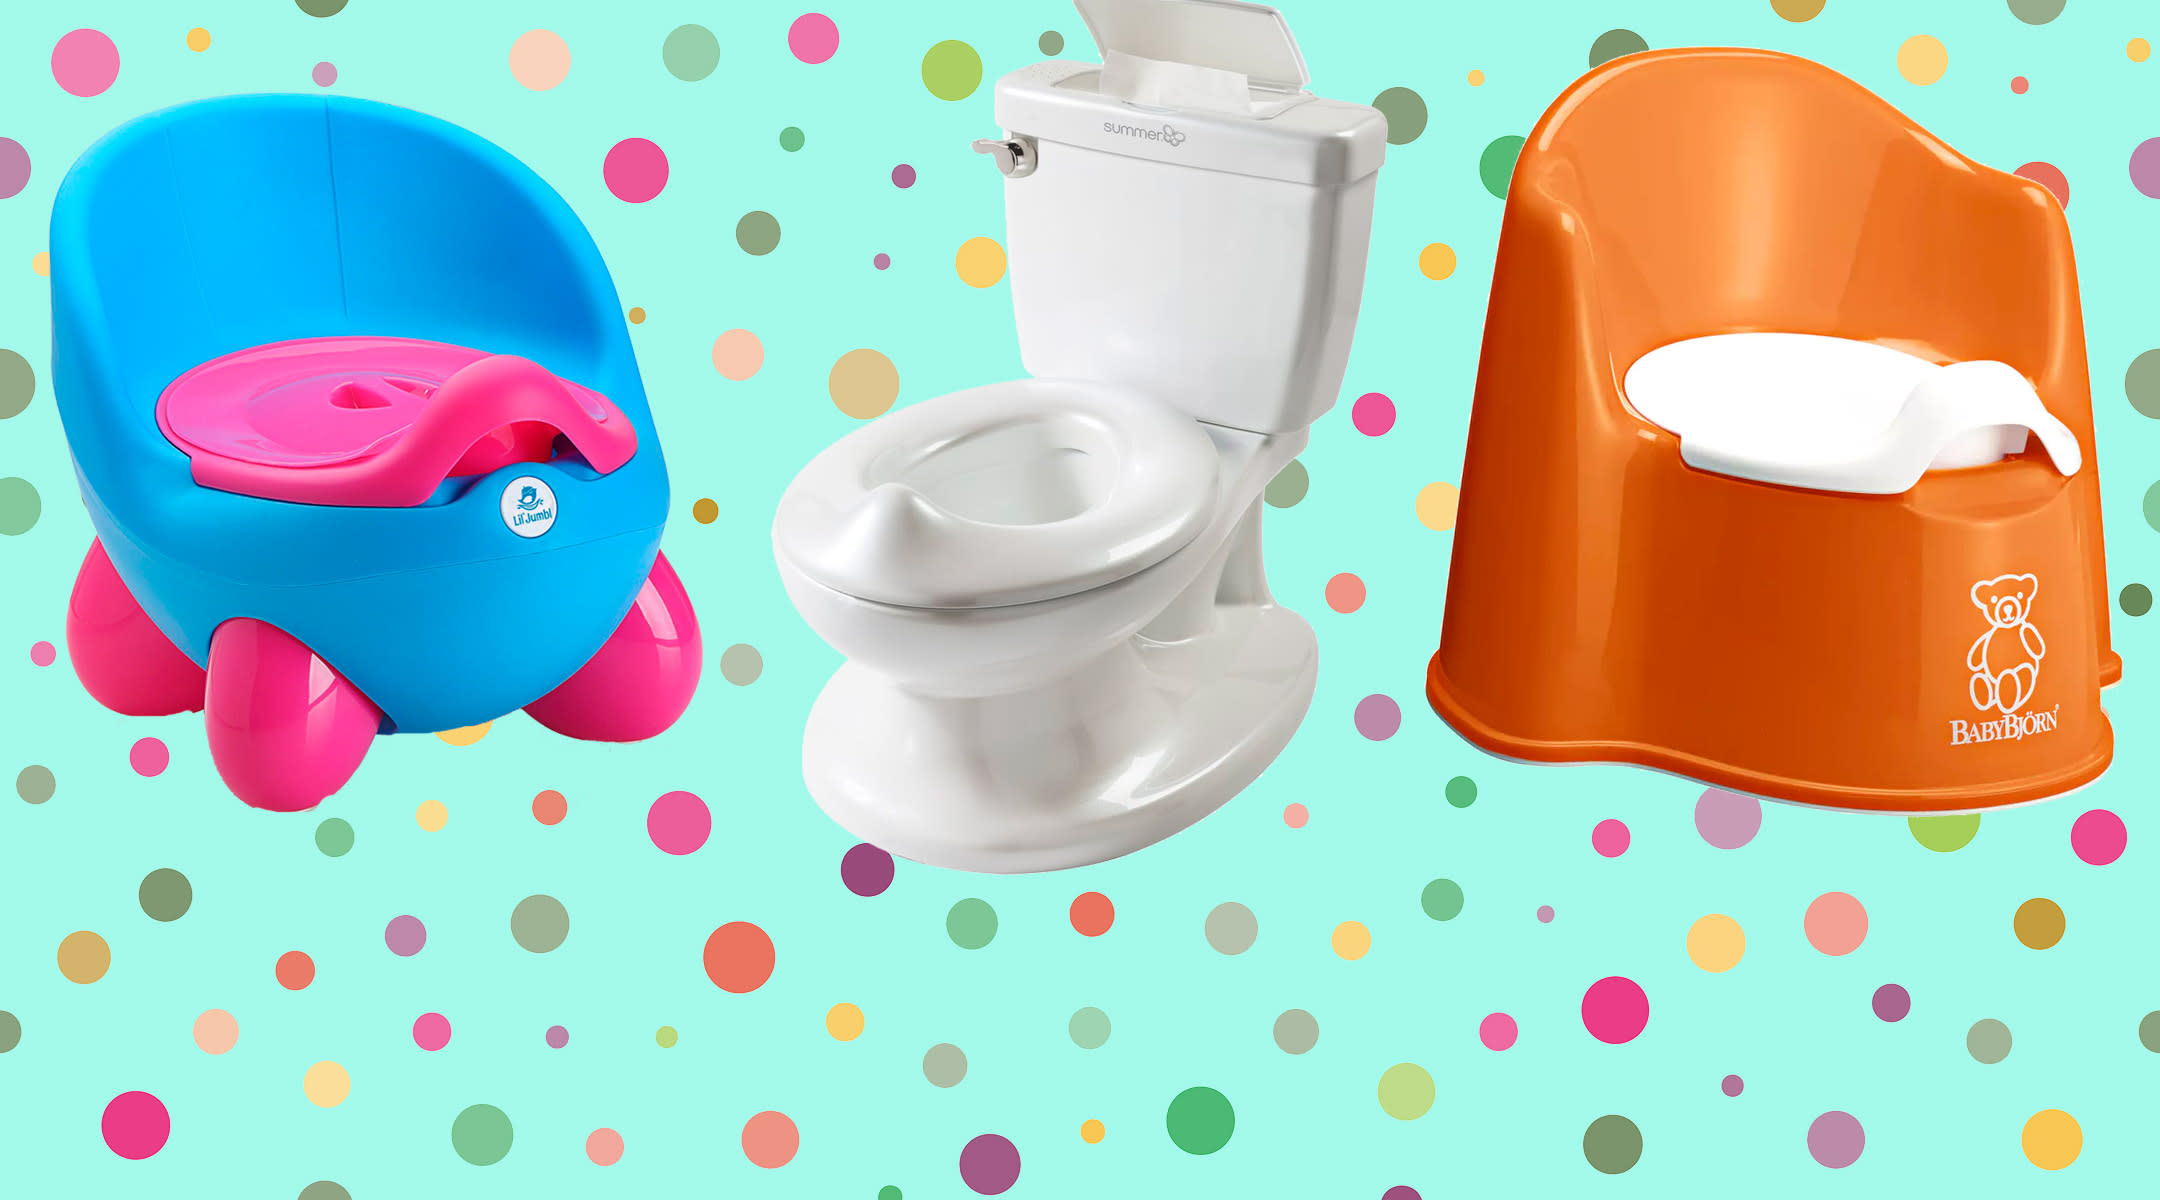 Wondrous The 10 Best Potty Training Toilet Seats And Chairs Evergreenethics Interior Chair Design Evergreenethicsorg